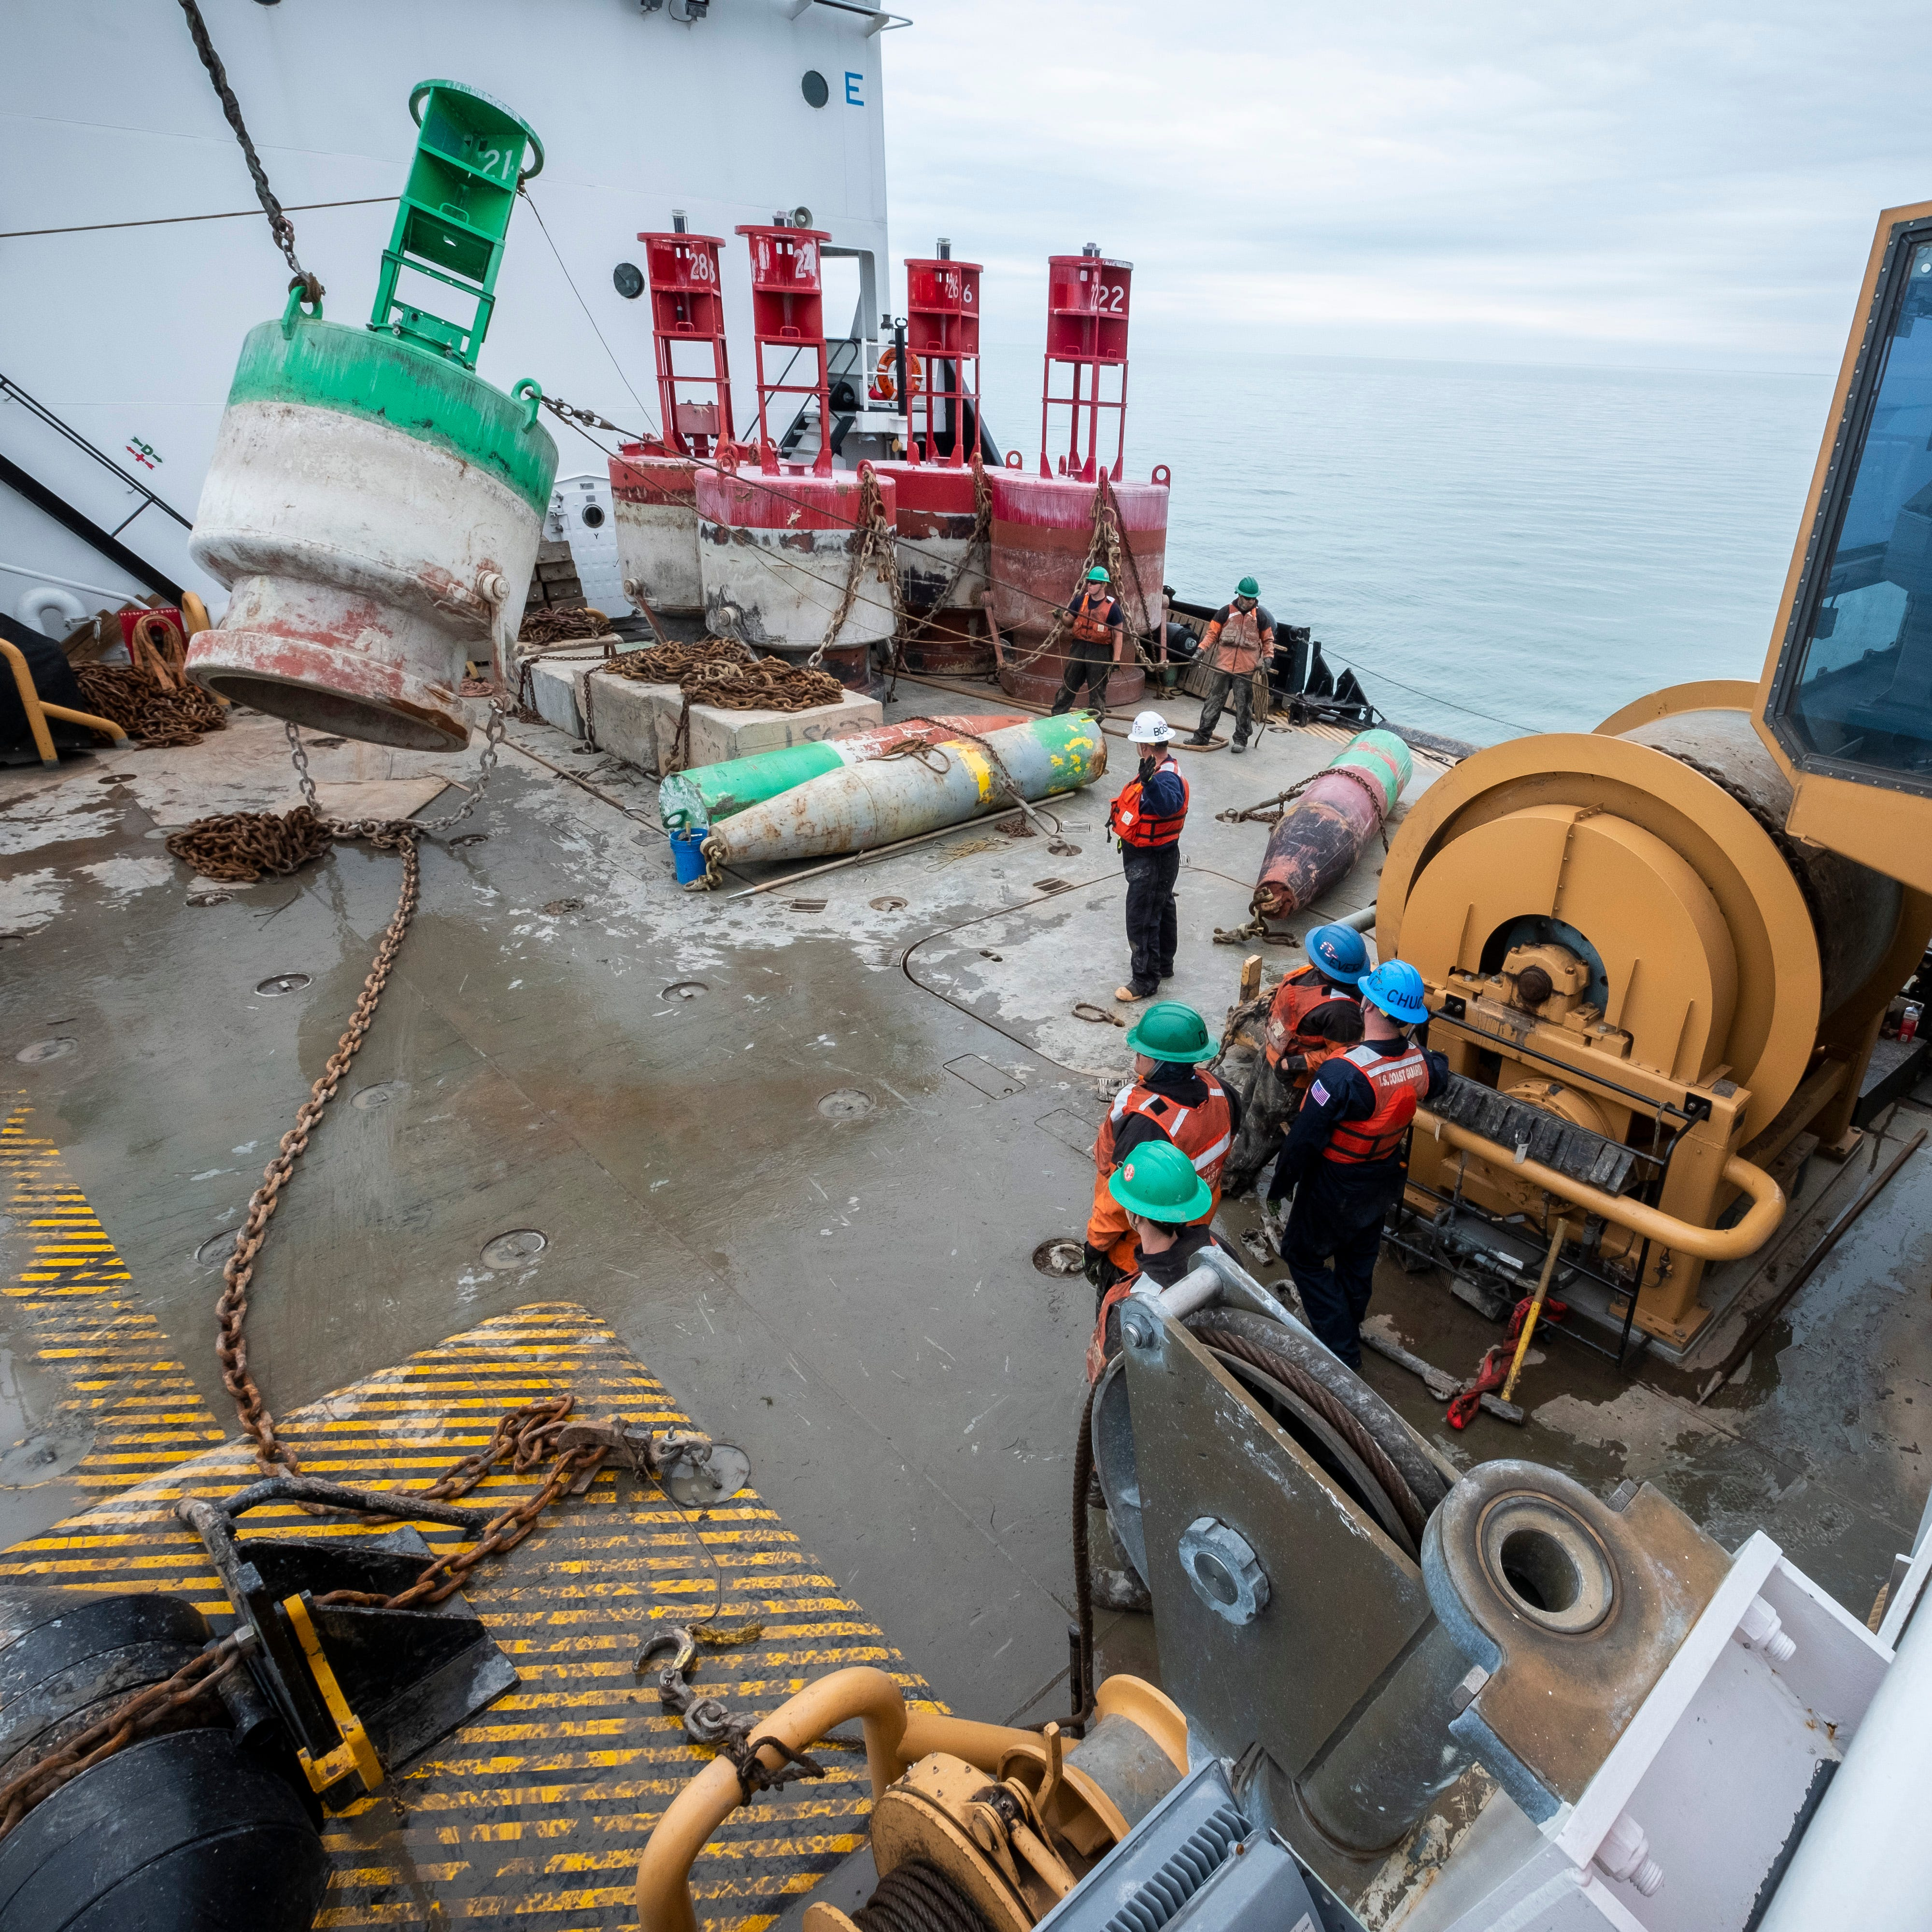 Tending to the buoys on the Hollyhock: A day with the U.S. Coast Guard ship and her crew